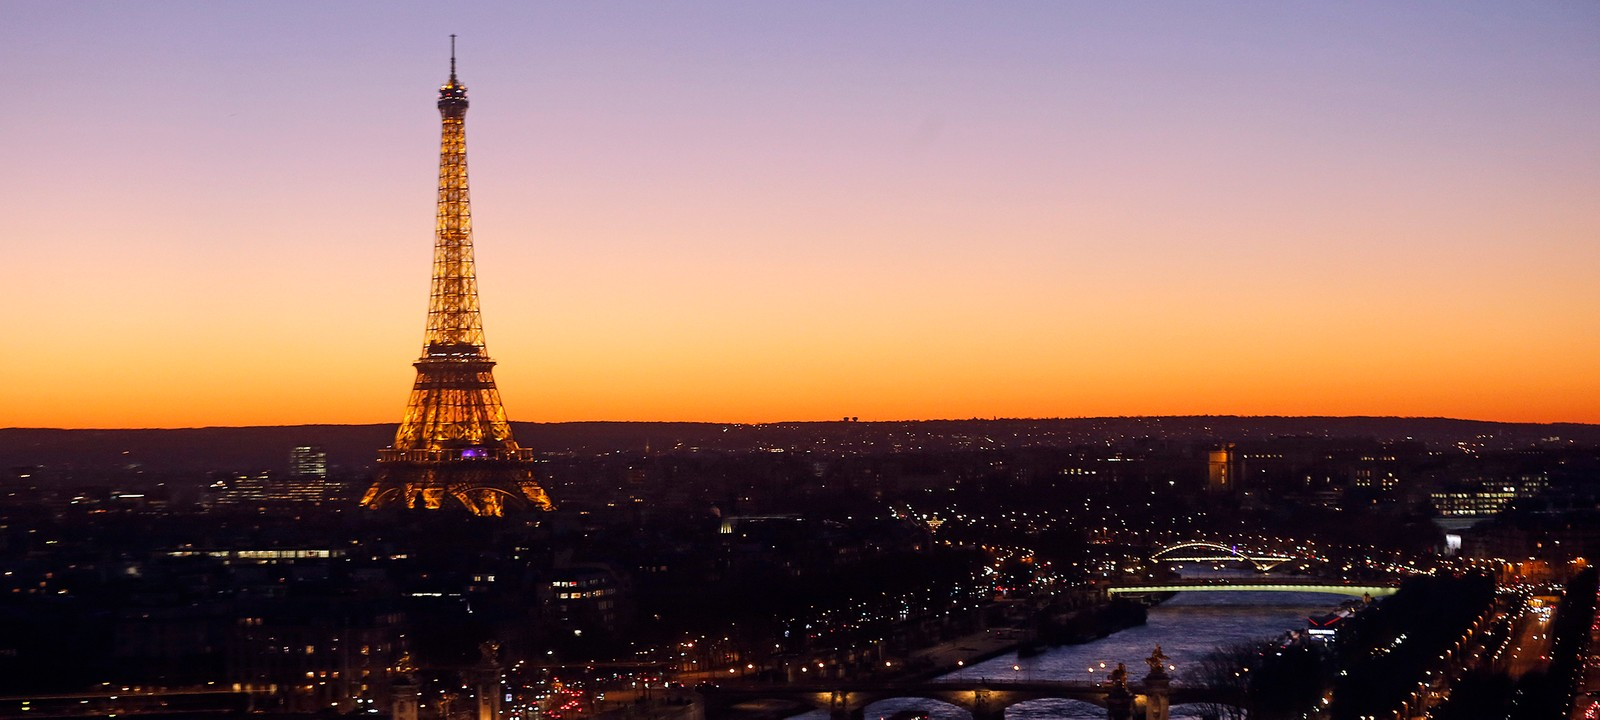 Paris Eiffel Tower Tour Sunset Skyline